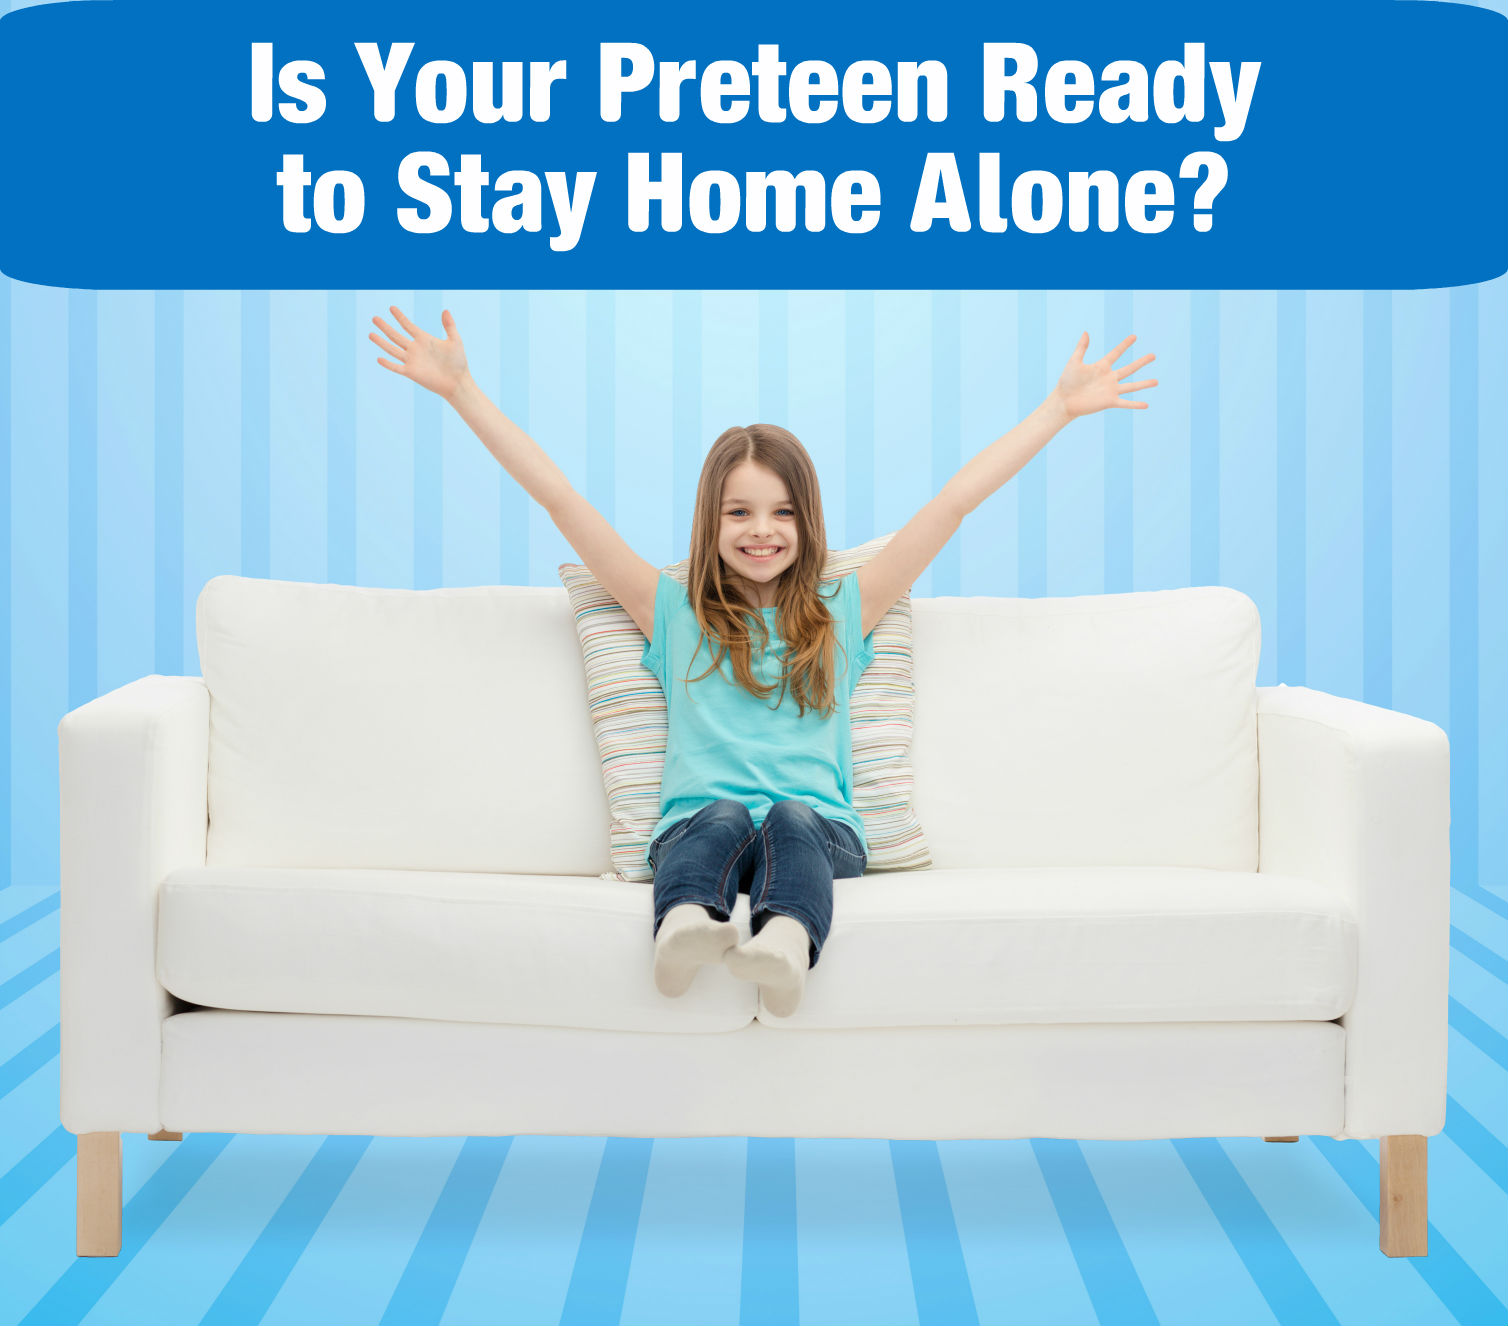 Home Alone: Is Your Preteen Ready?